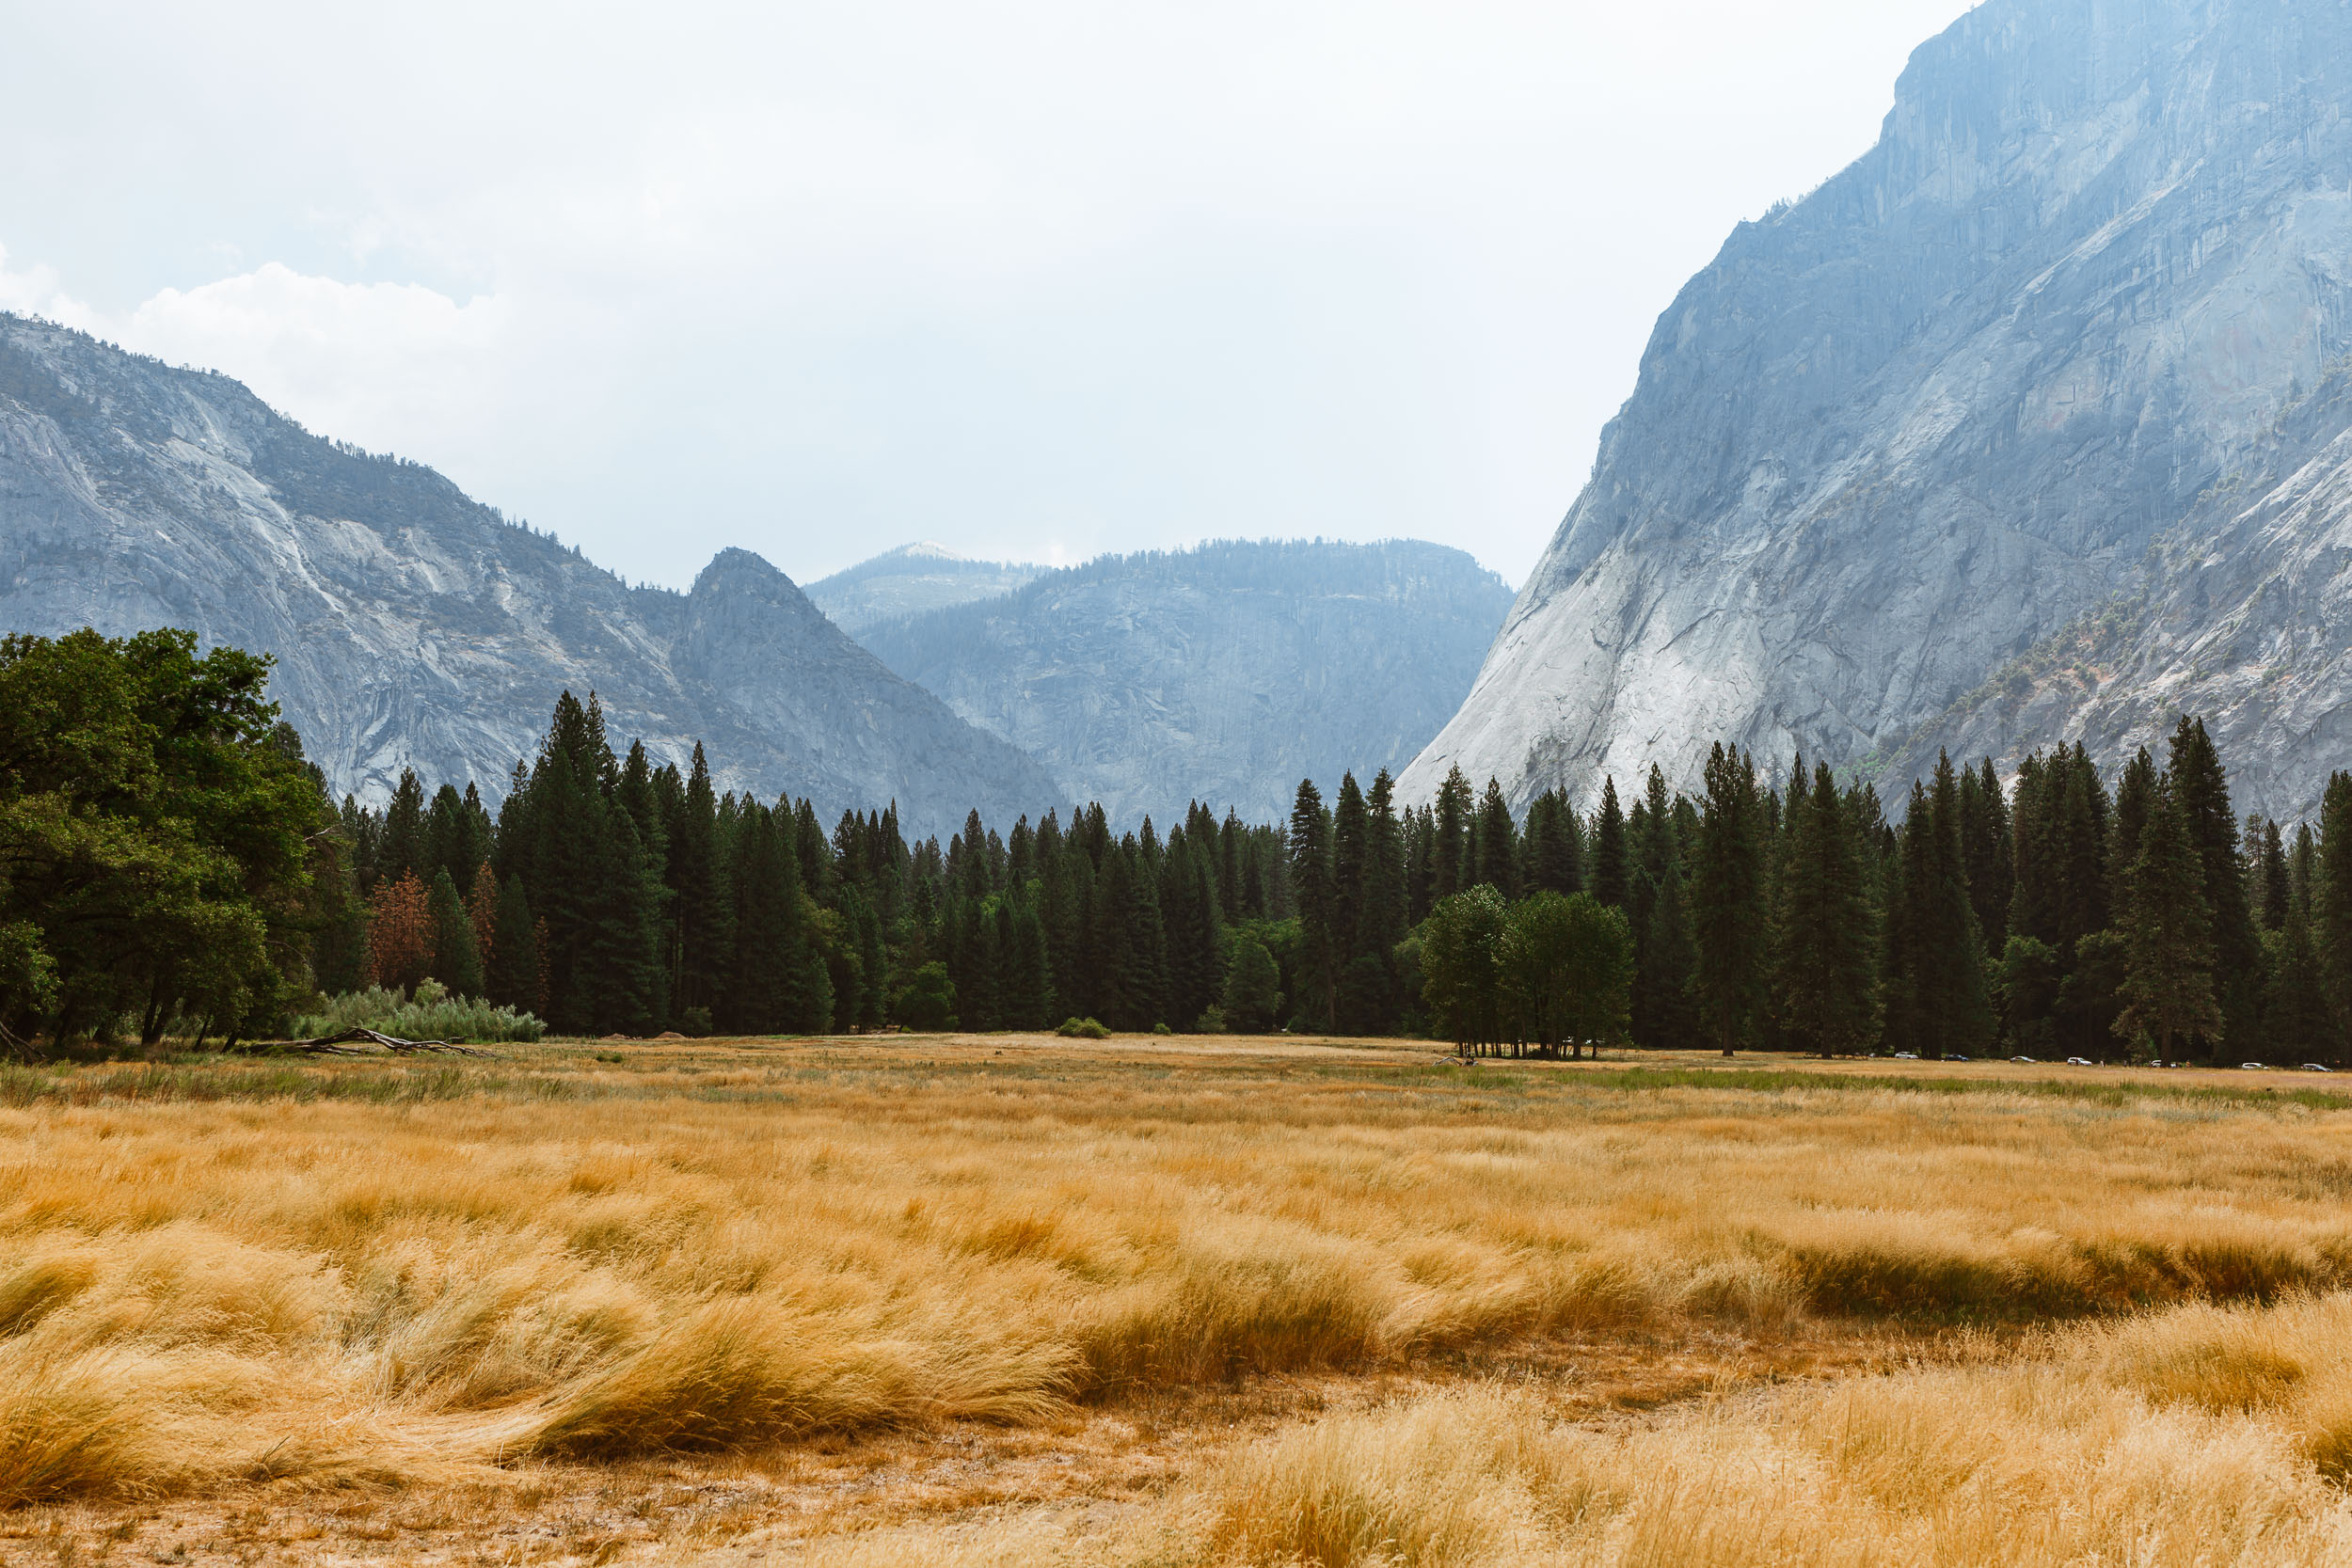 20160820_20160821_YOSEMITE_NATIONAL_PARK-3.jpg